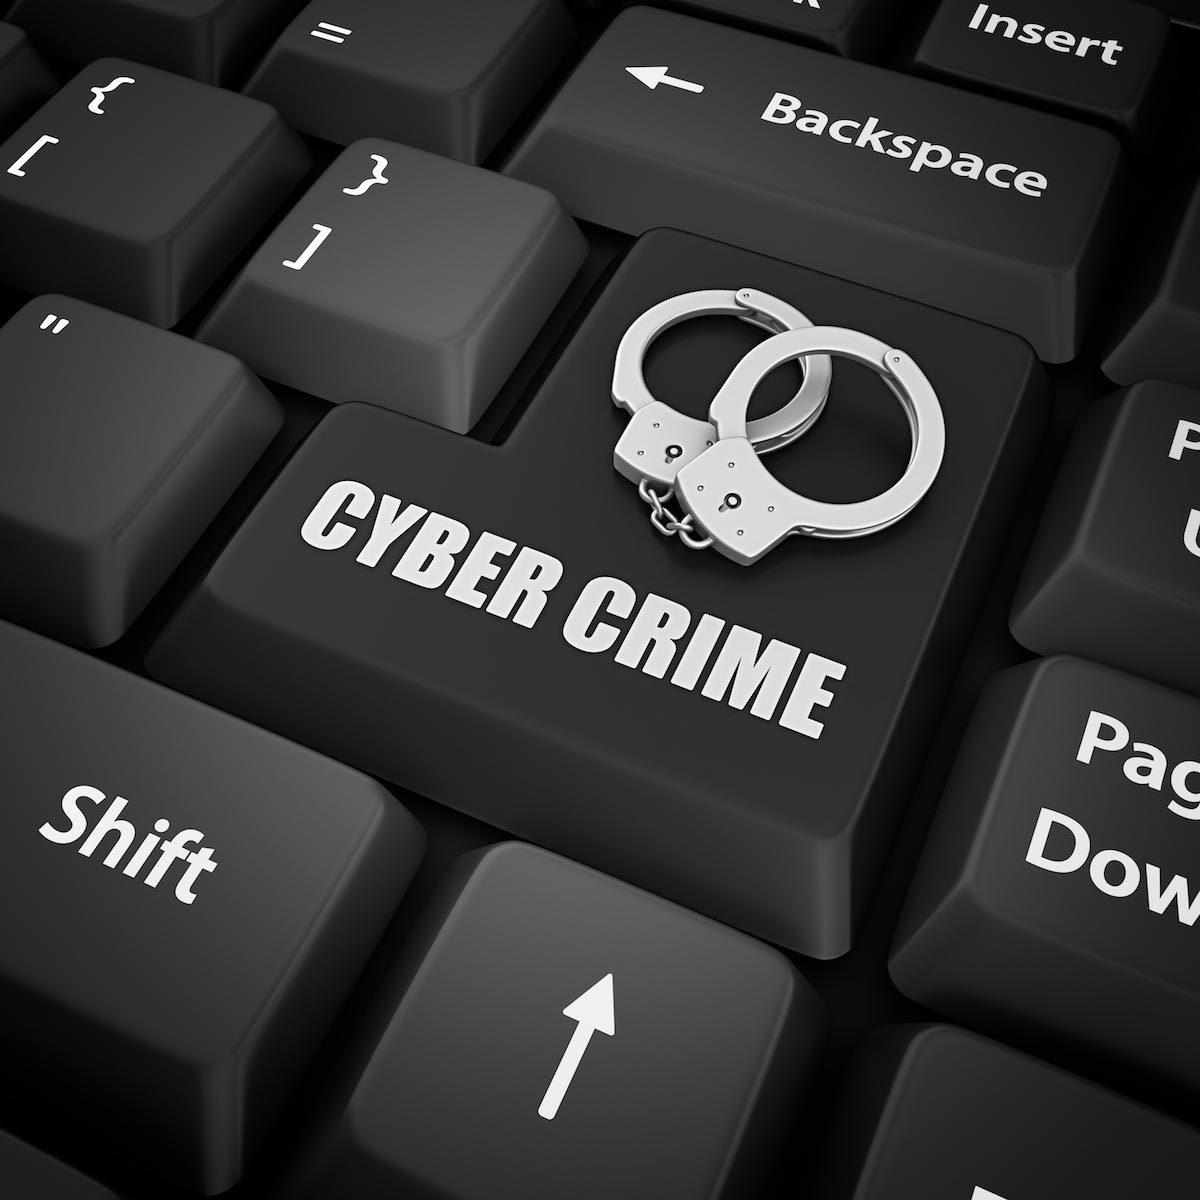 the issue of computer crime Cyberterrorism and computer crimes: issues surrounding the establishment of an international legal regime richard w aldrich inss occasional paper 32.